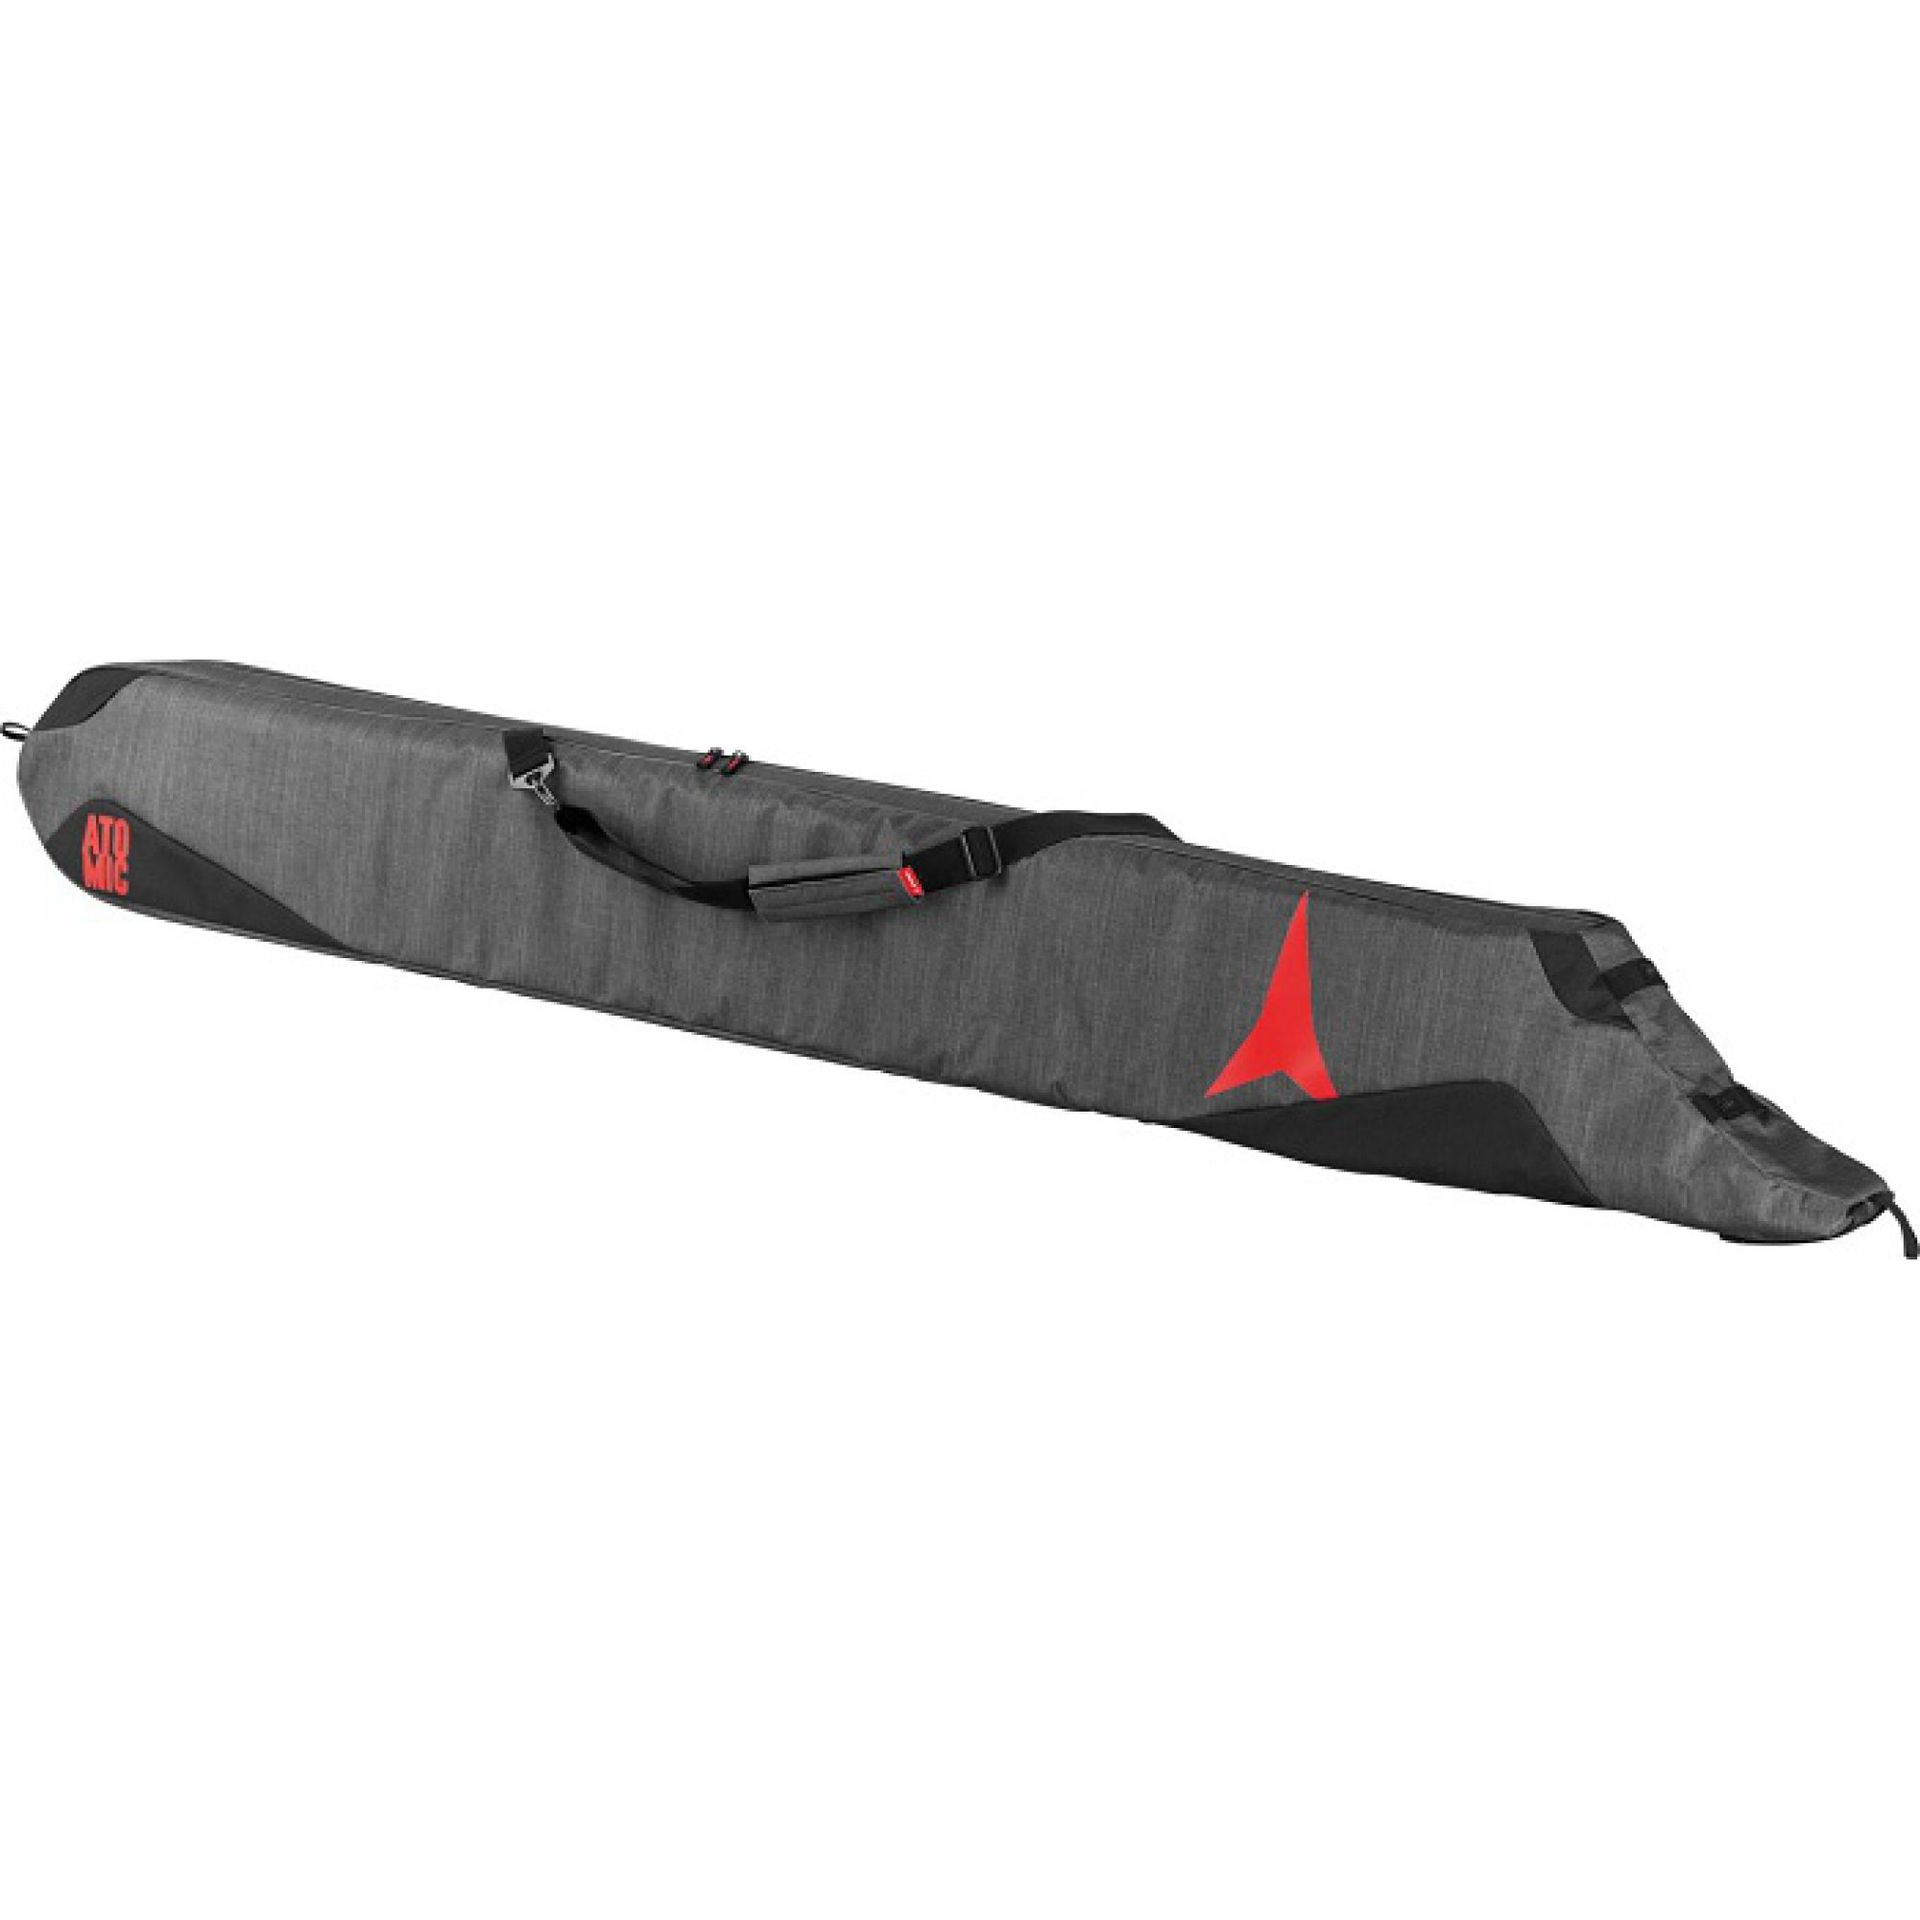 POKROWIEC NA NARTY ATOMIC AMT SINGLE SKI BAG PADDED SZARY